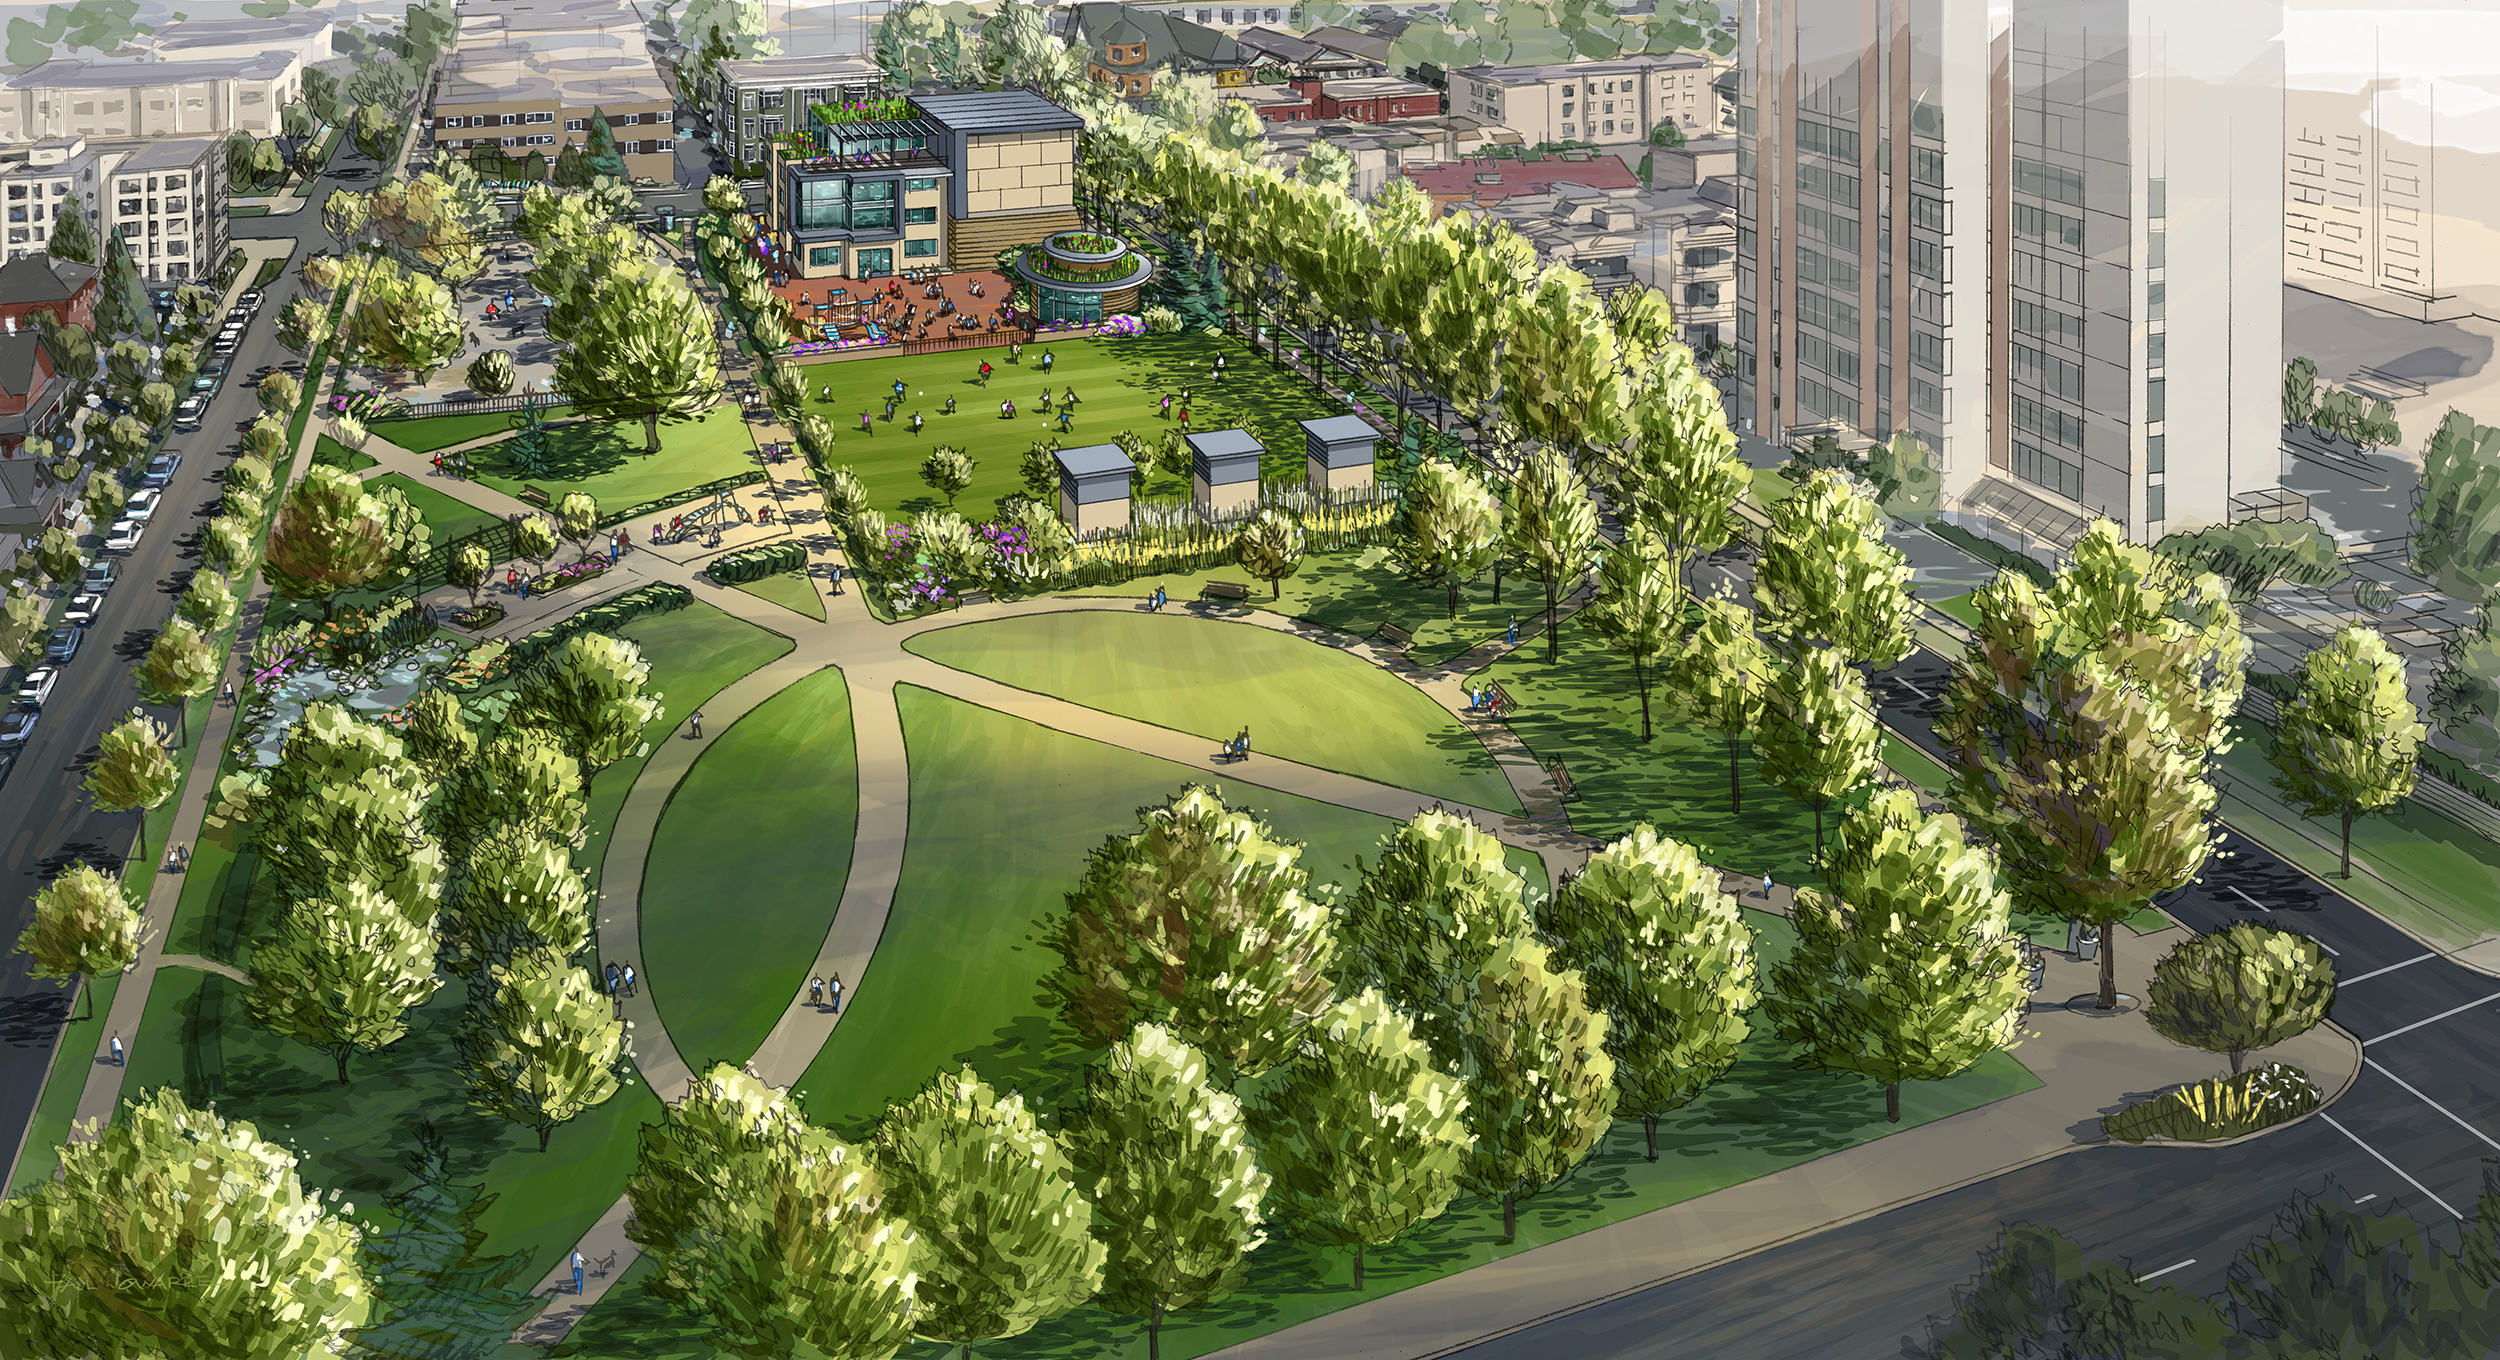 Artist's vision of nelson park after redevelopment.